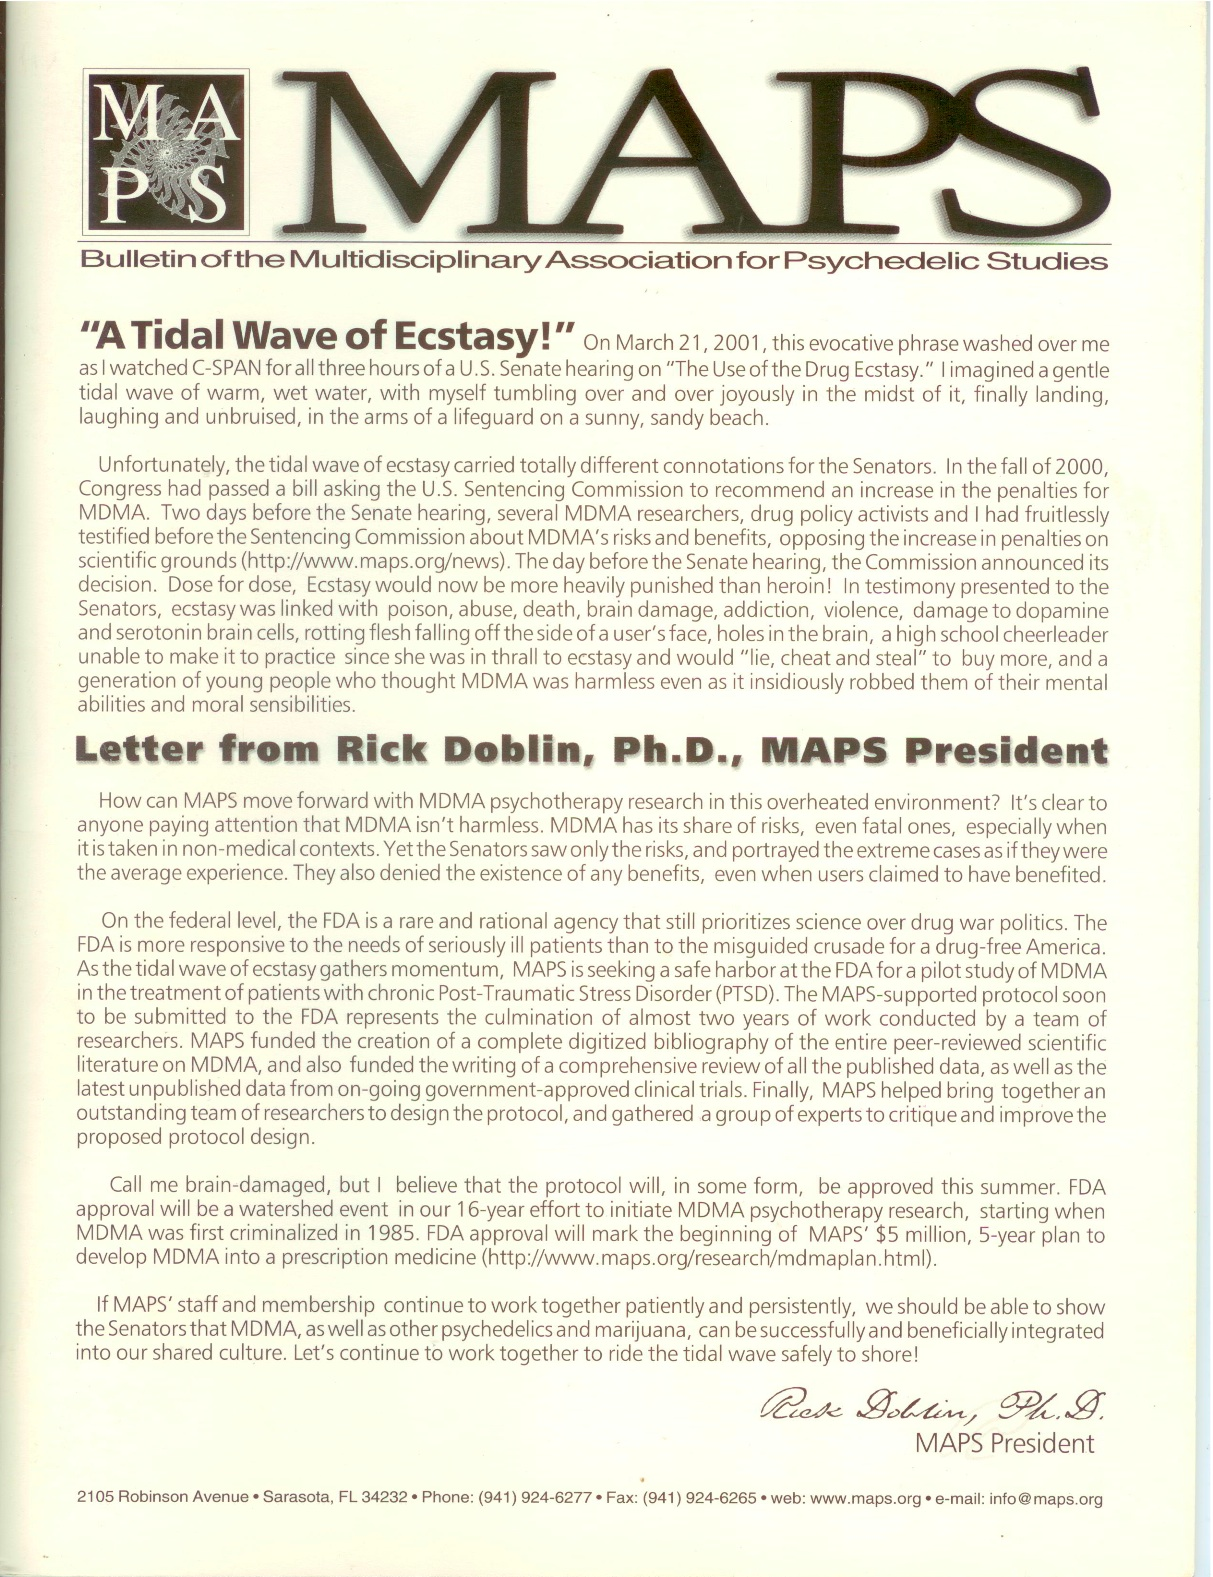 MAPS Bulletin Vol xi No 1: Spring 2001 - Front Cover Image - Psychedelic Art -  by